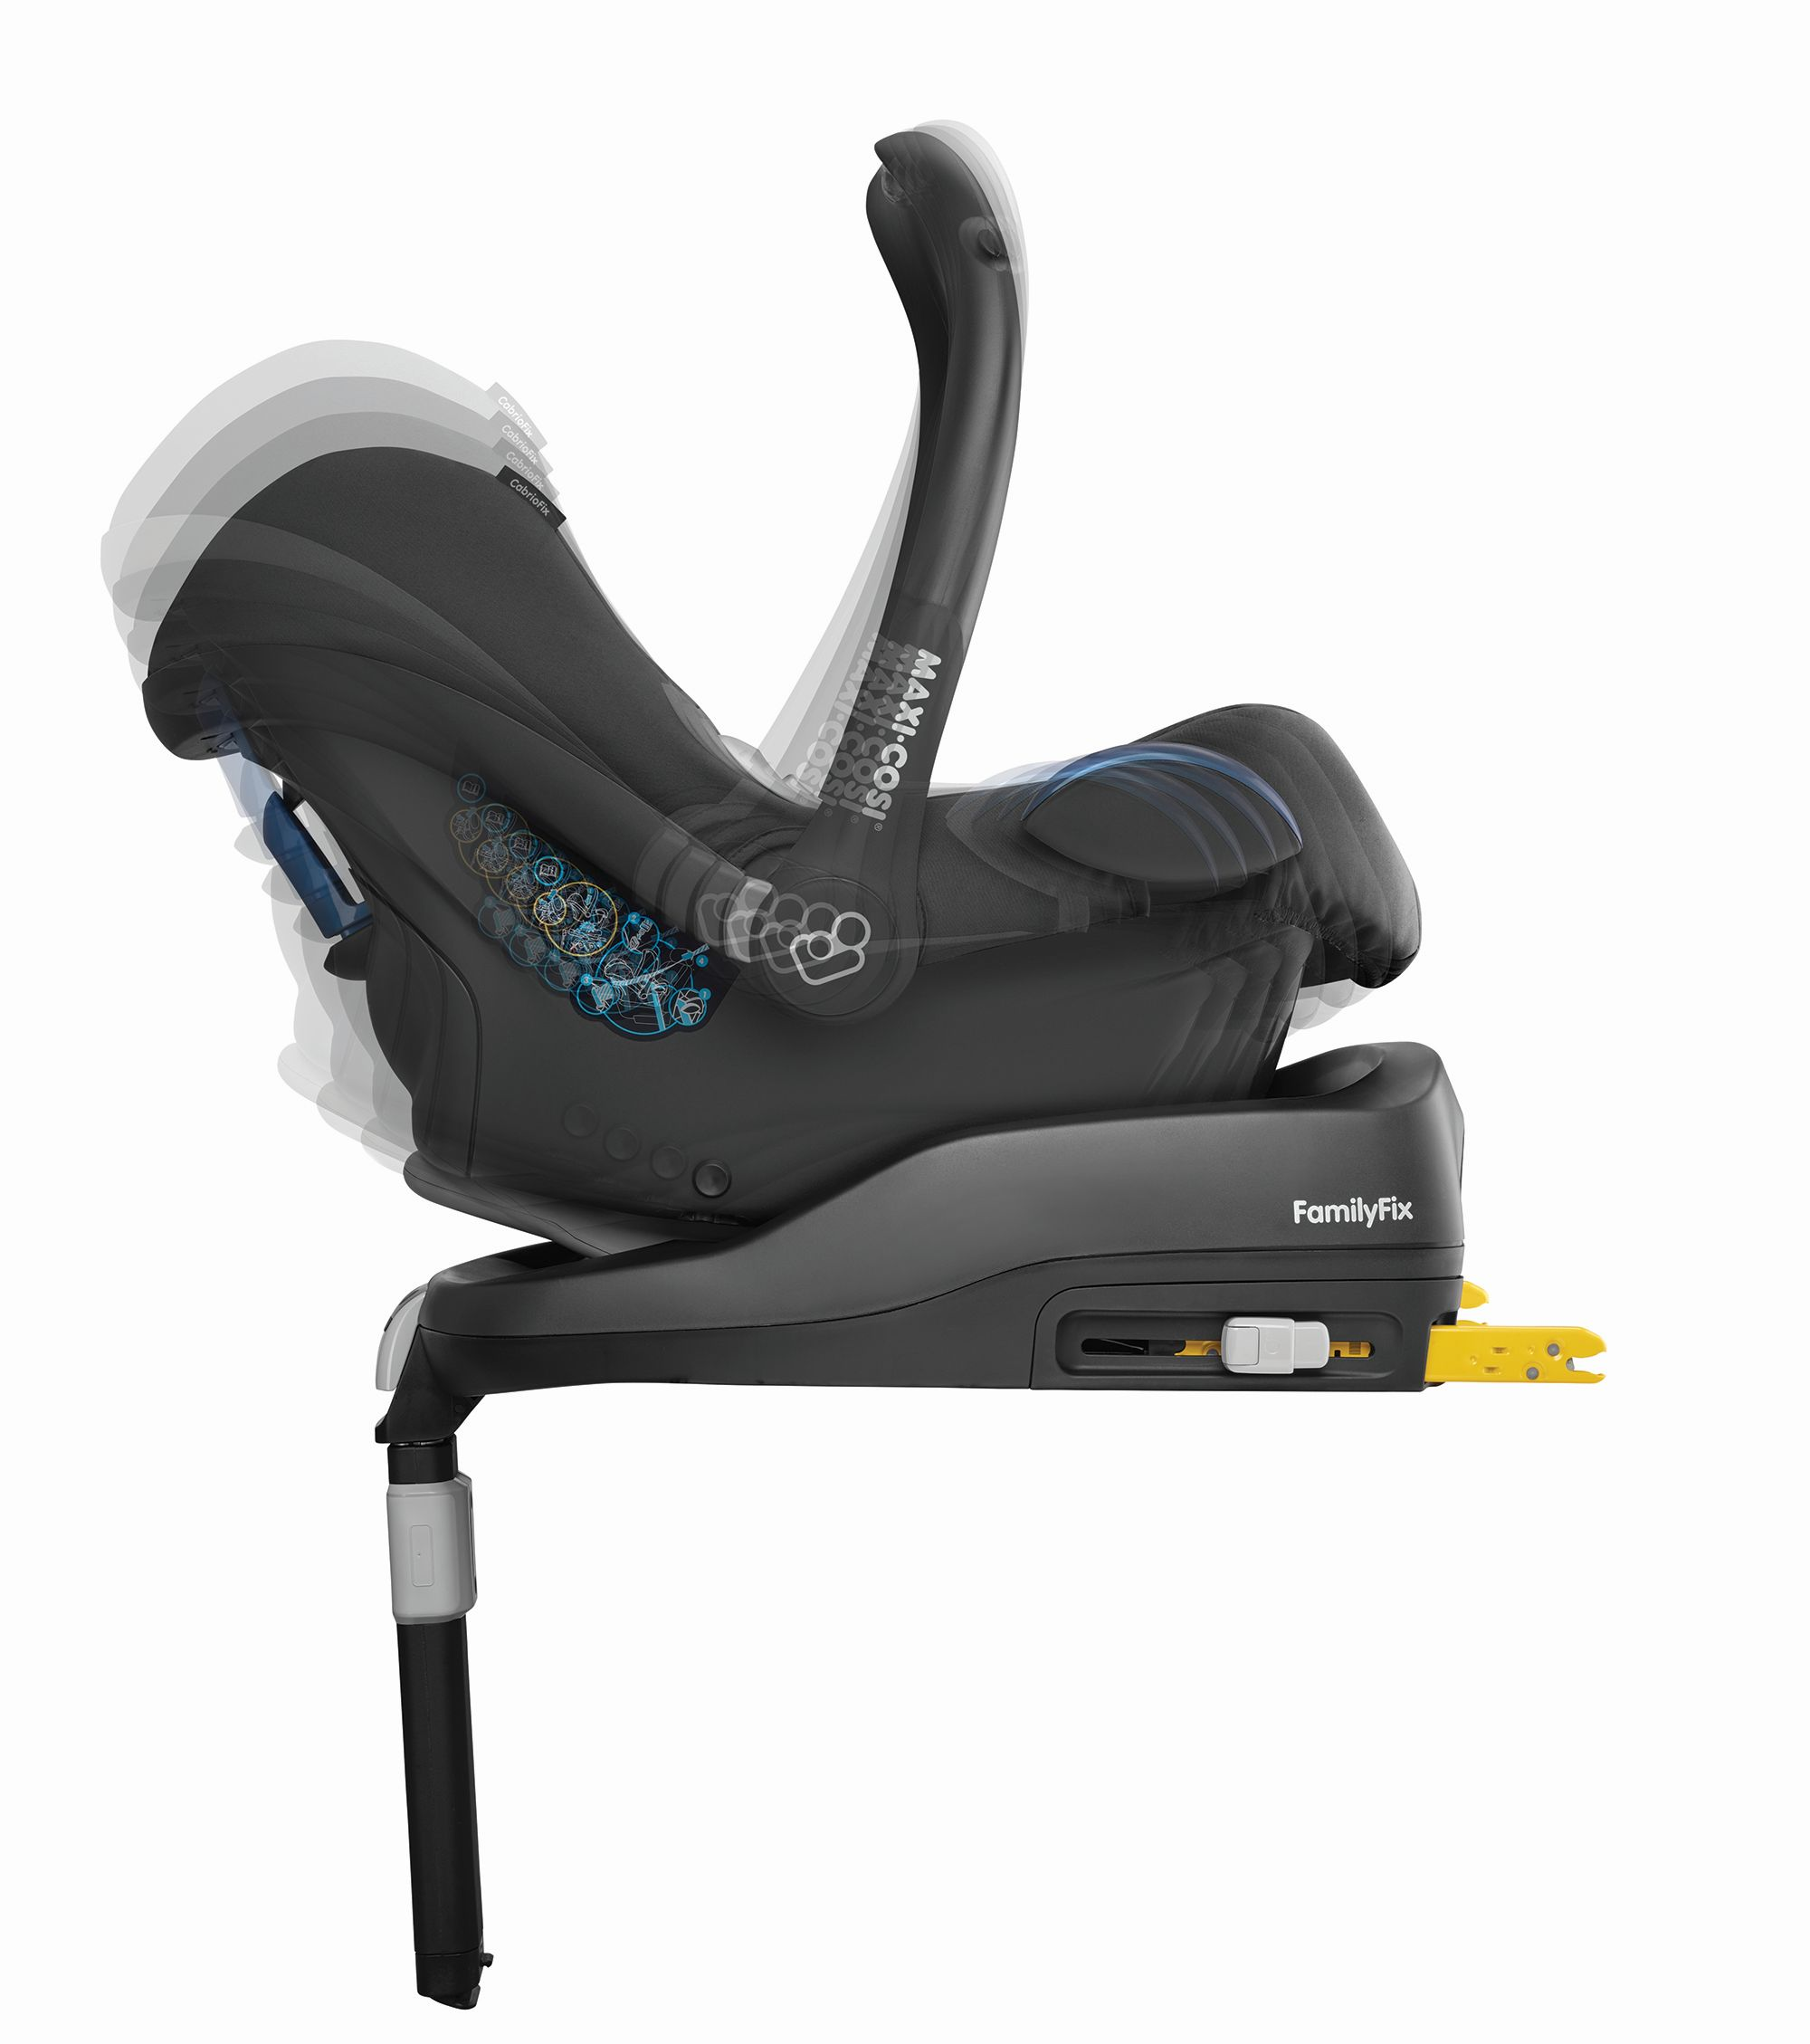 maxi cosi infant car seat cabriofix buy at kidsroom. Black Bedroom Furniture Sets. Home Design Ideas